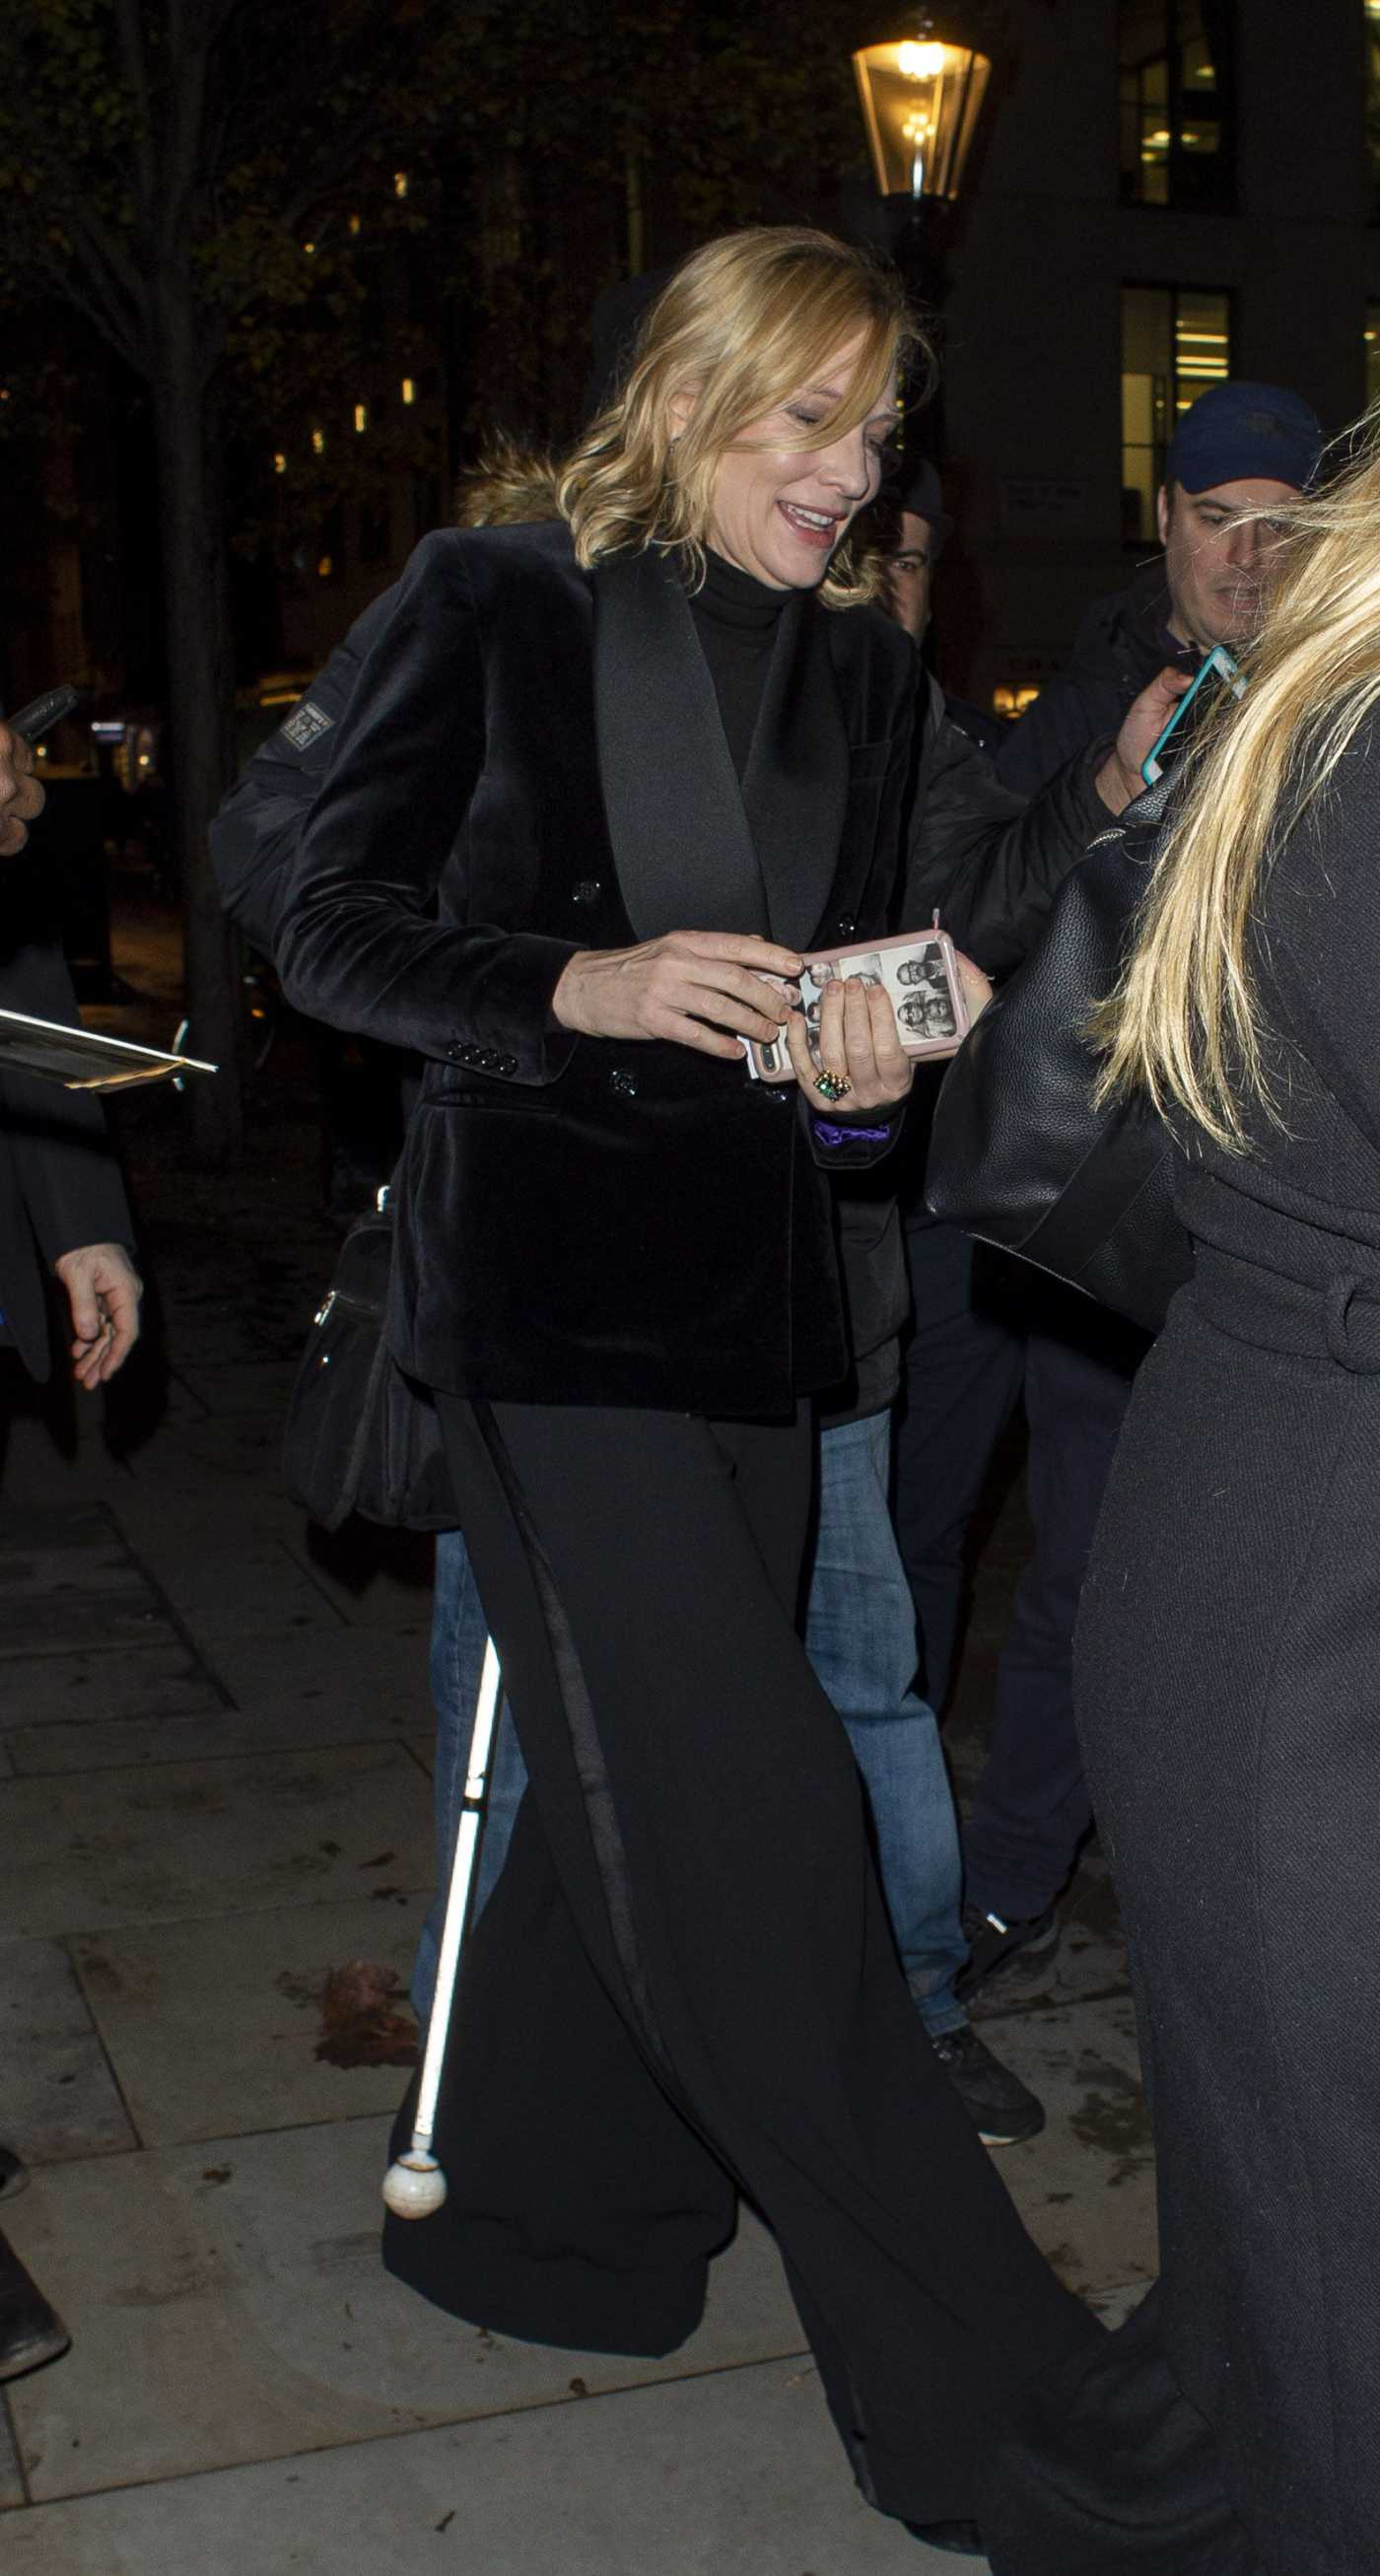 Cate Blanchett in a Black Blazer Leaves the Fayre of St James Christmas Carol Concert in London 11/26/2019